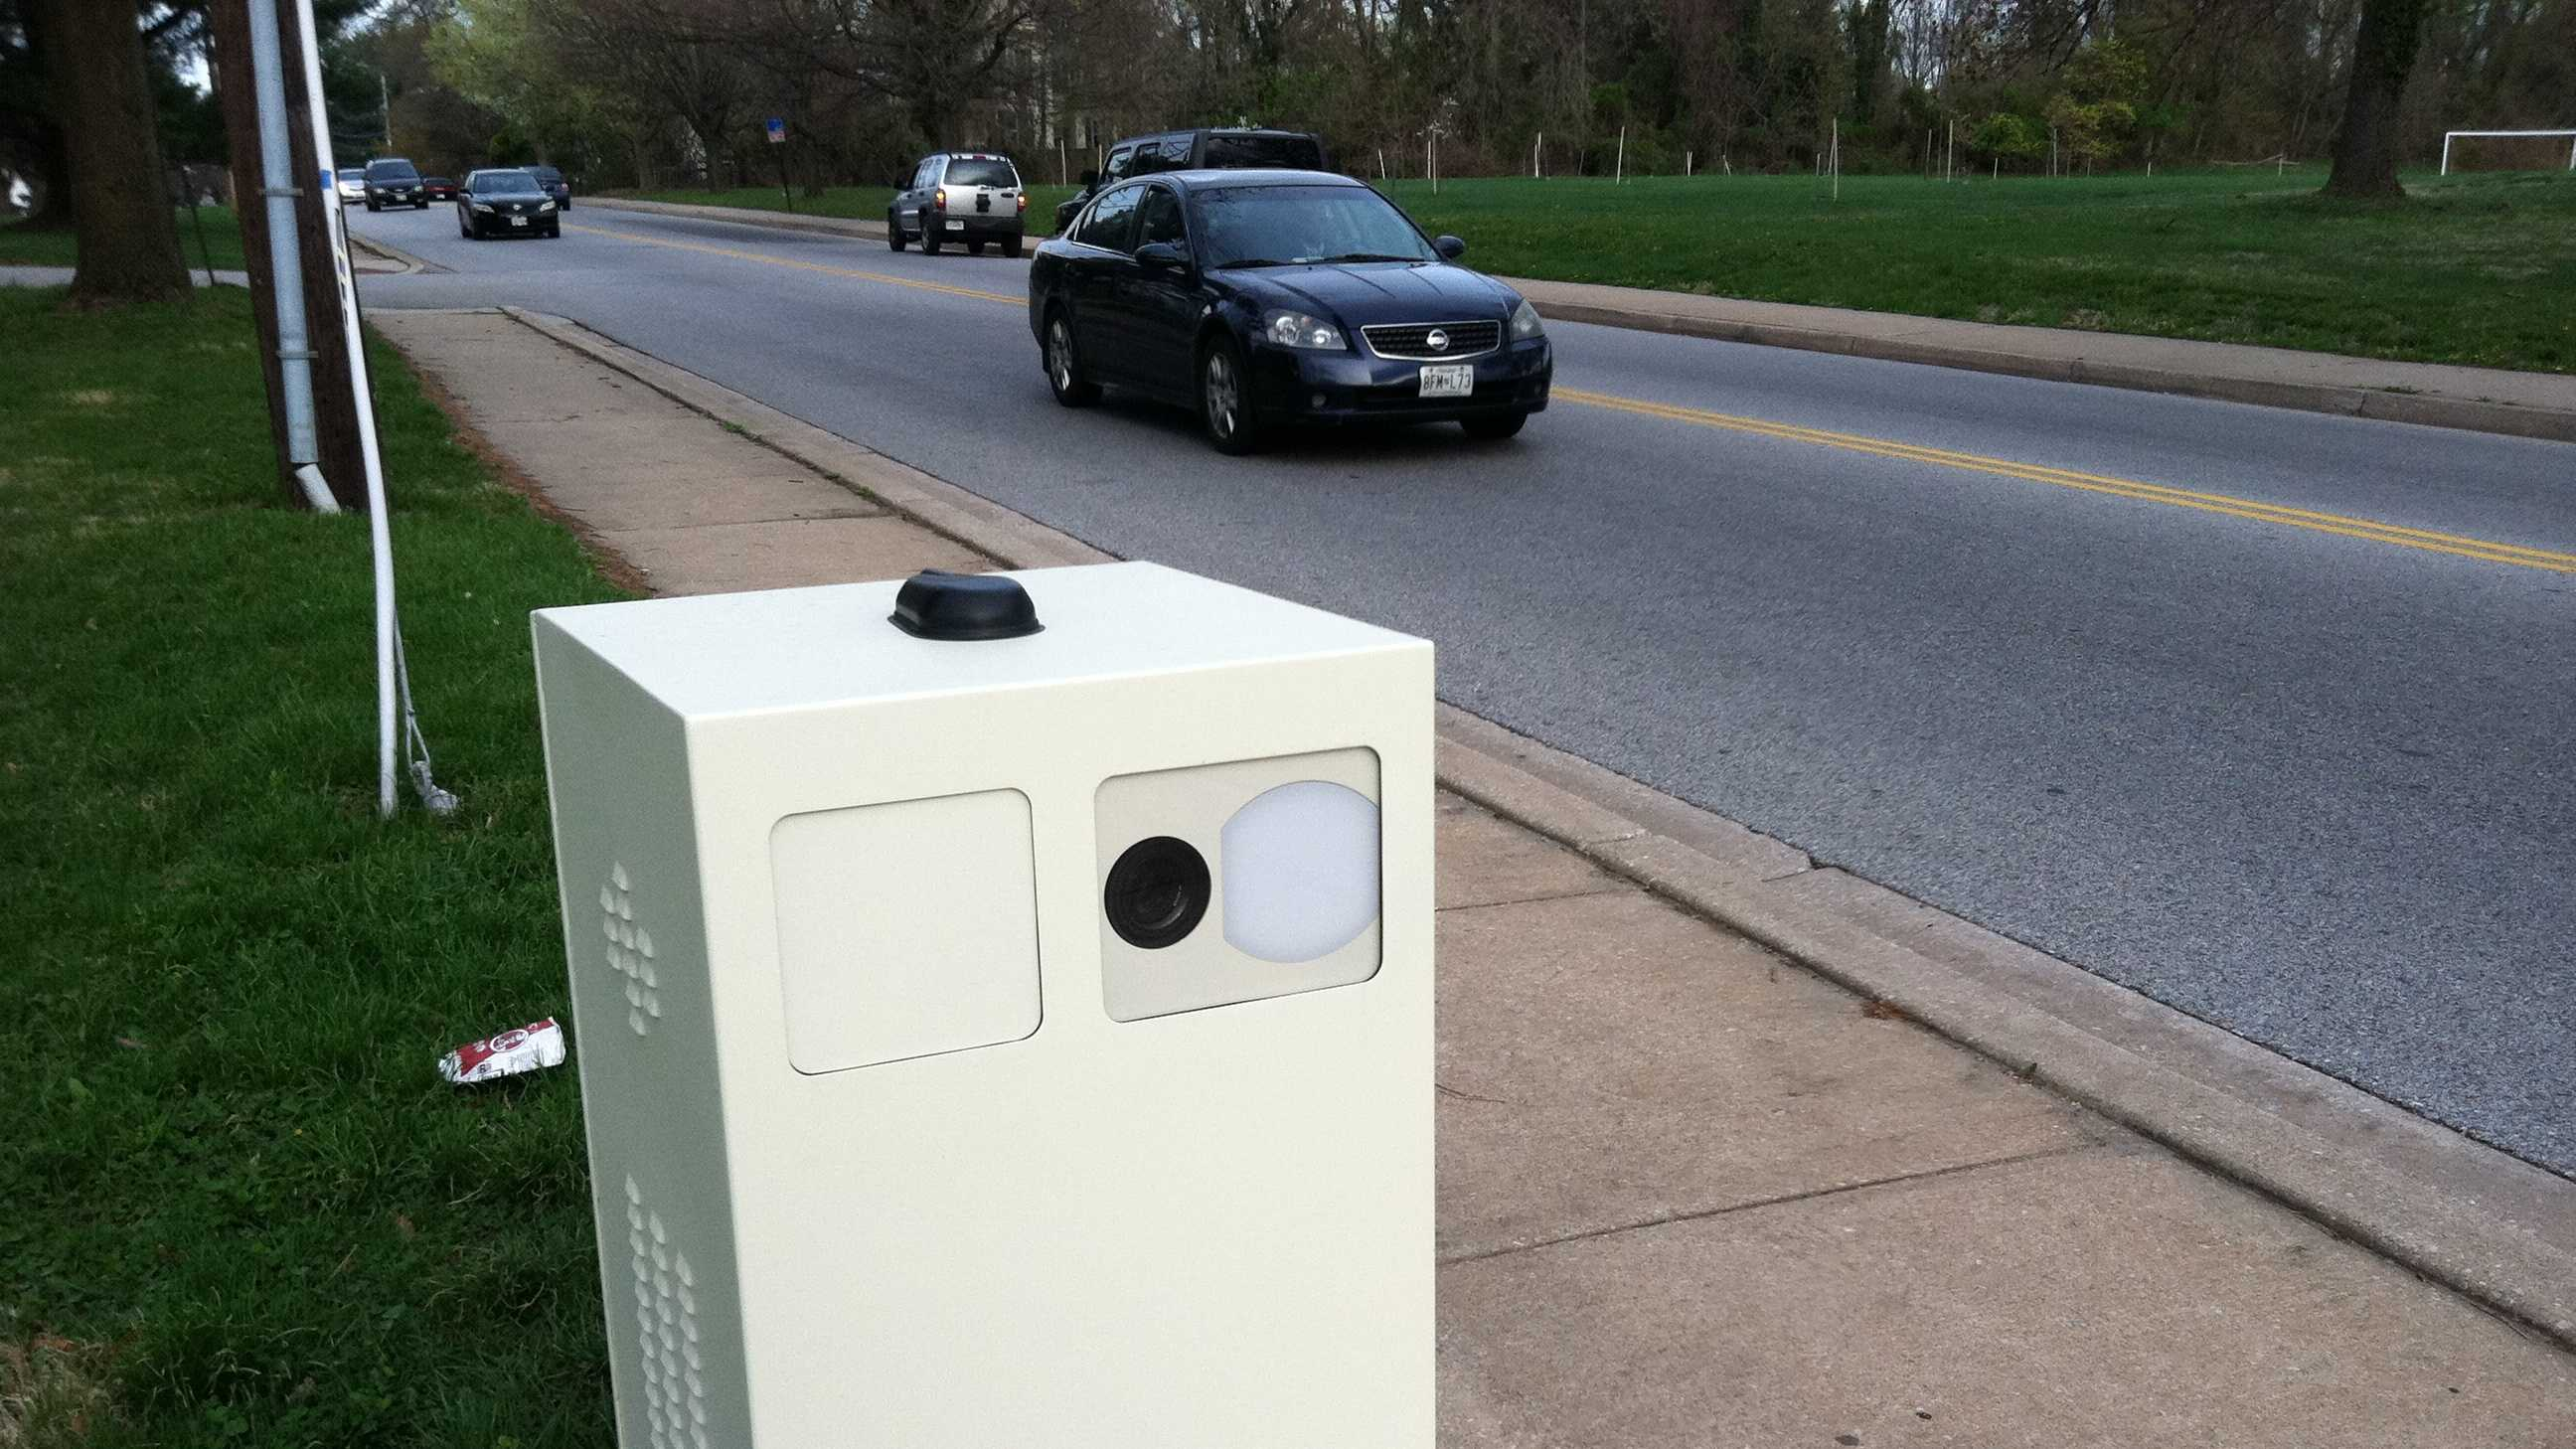 One of the new speed cameras in the city along Windsor Mill Road near Linkin Park was taken offline early Wednesday.